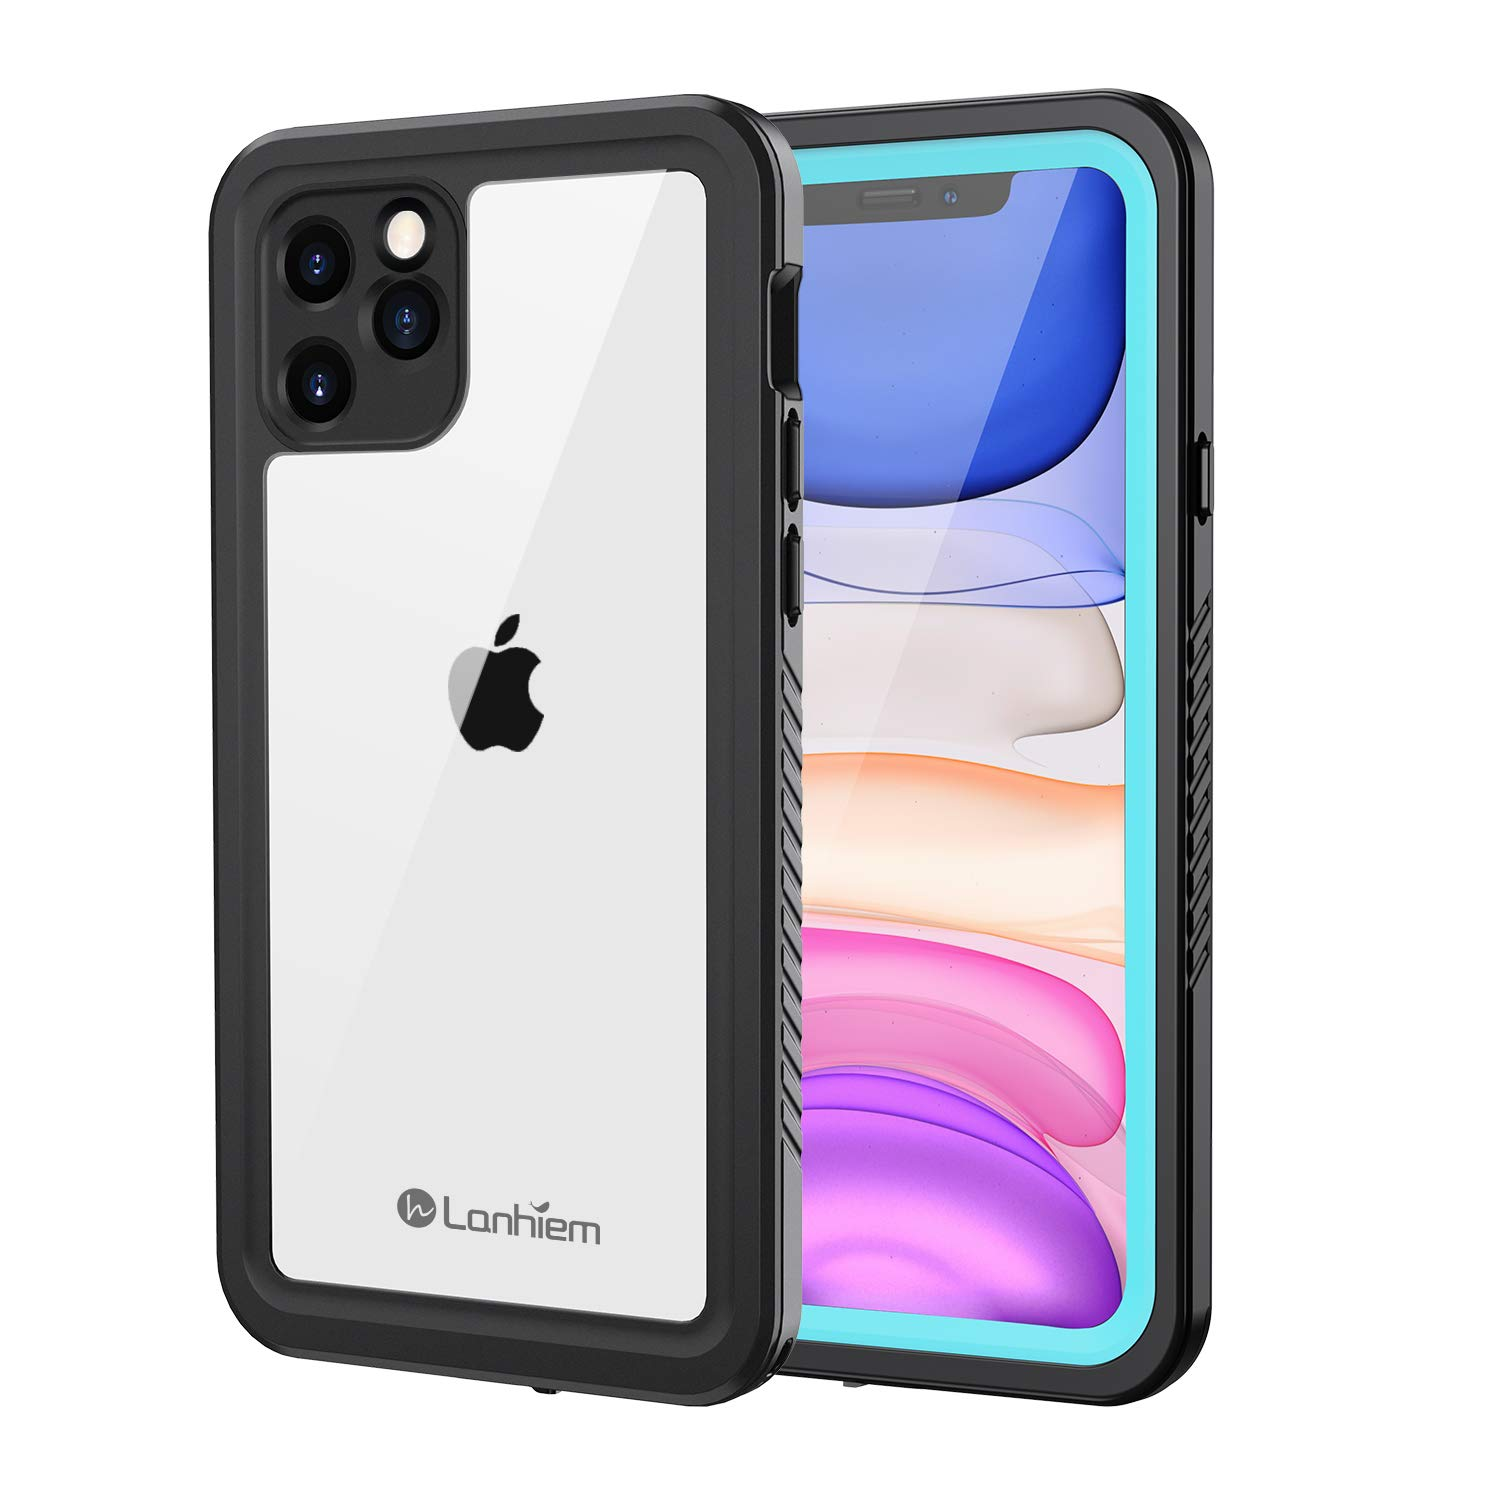 Lanhiem iPhone 11 Pro Max Waterproof Case, 360 Full Body Protection Underwater Dirtproof Shockproof Clear Cover with Built-in Screen Protector for iPhone 11 Pro Max 6.5 Inch (Blue)